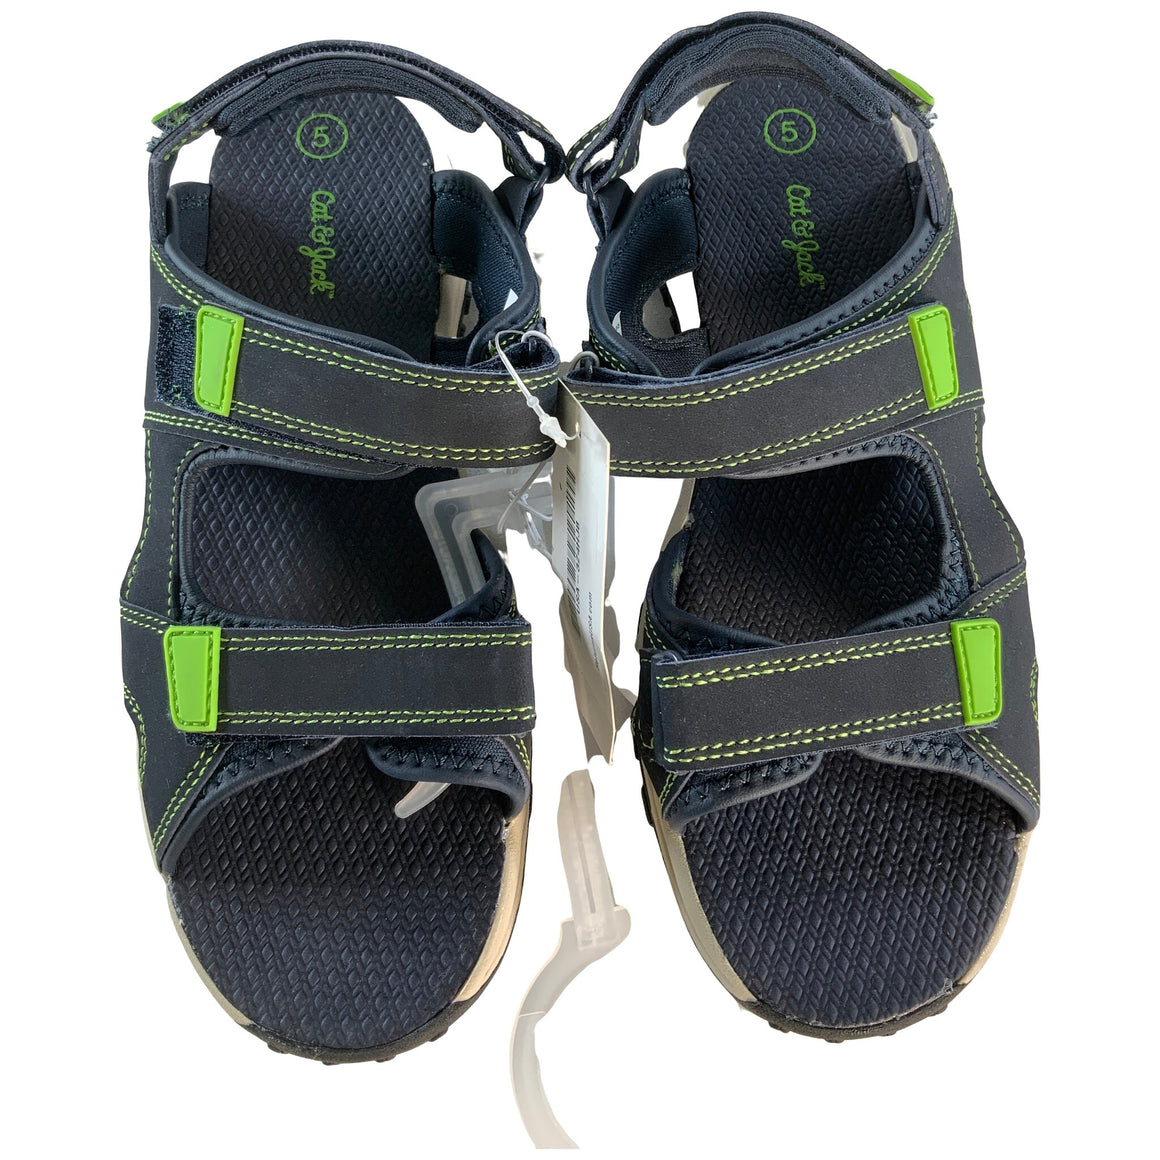 Boys' Konnor Hiking Sandals - Navy 5 - Cat & Jack™